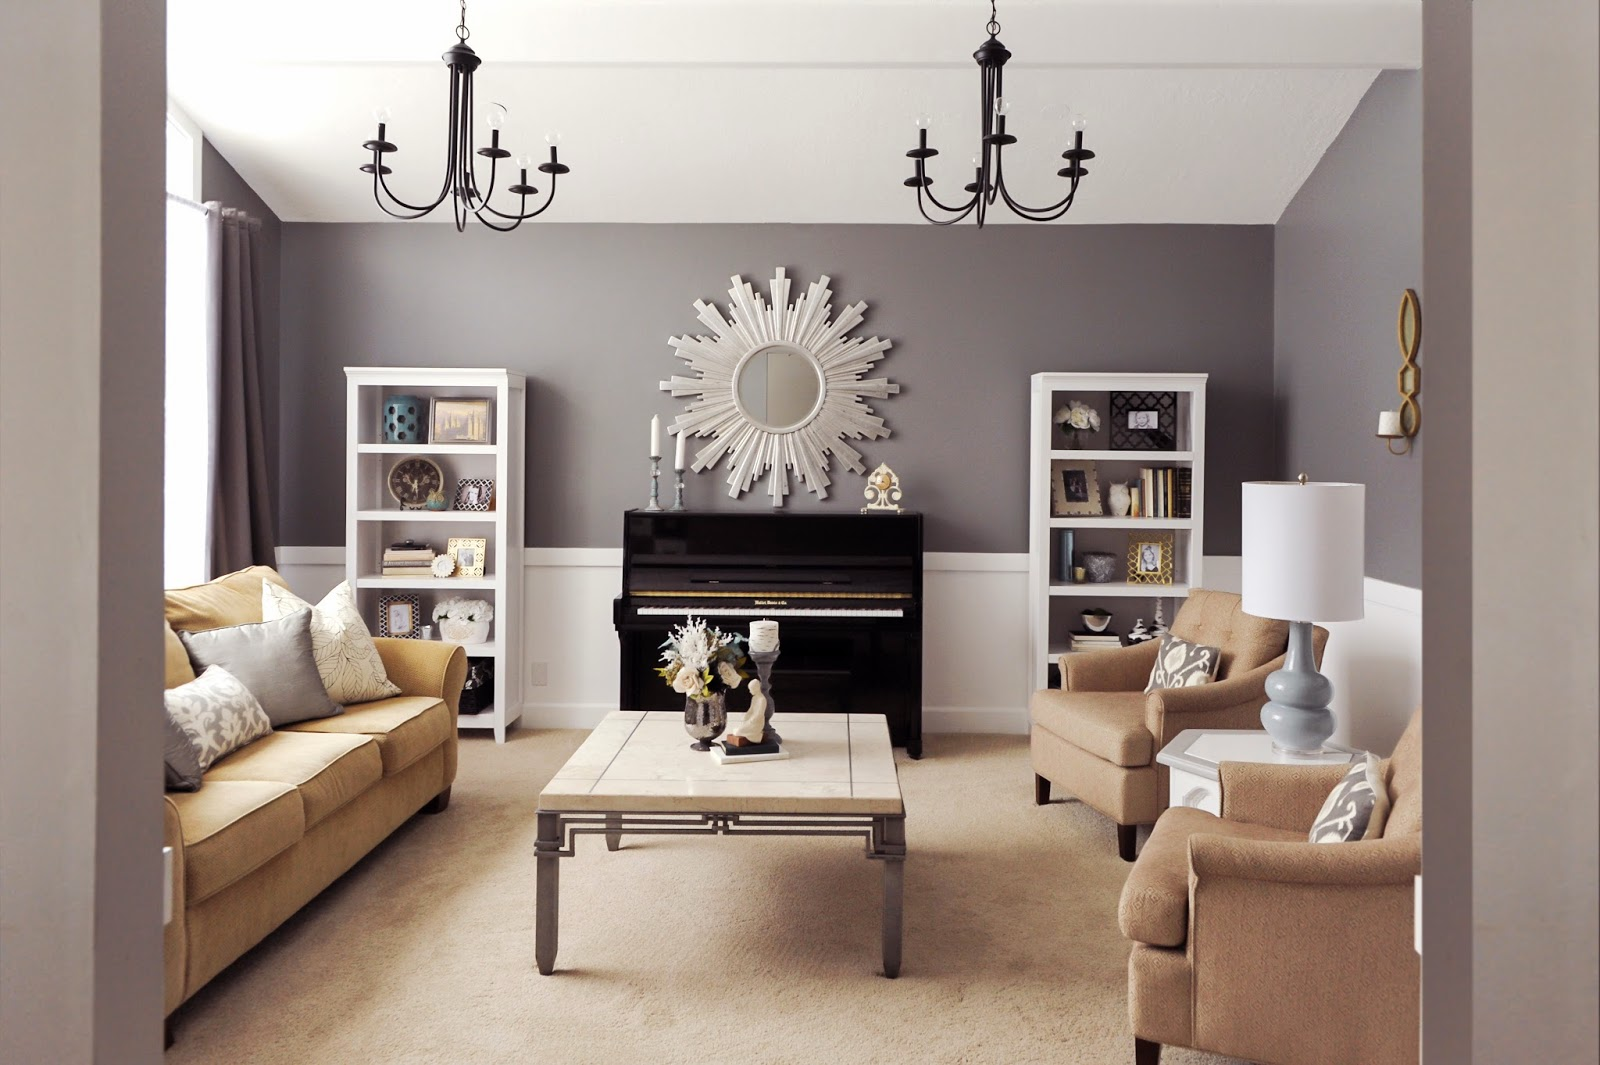 Studio 7 Interior Design: Client Reveal:Transitional Chic ...